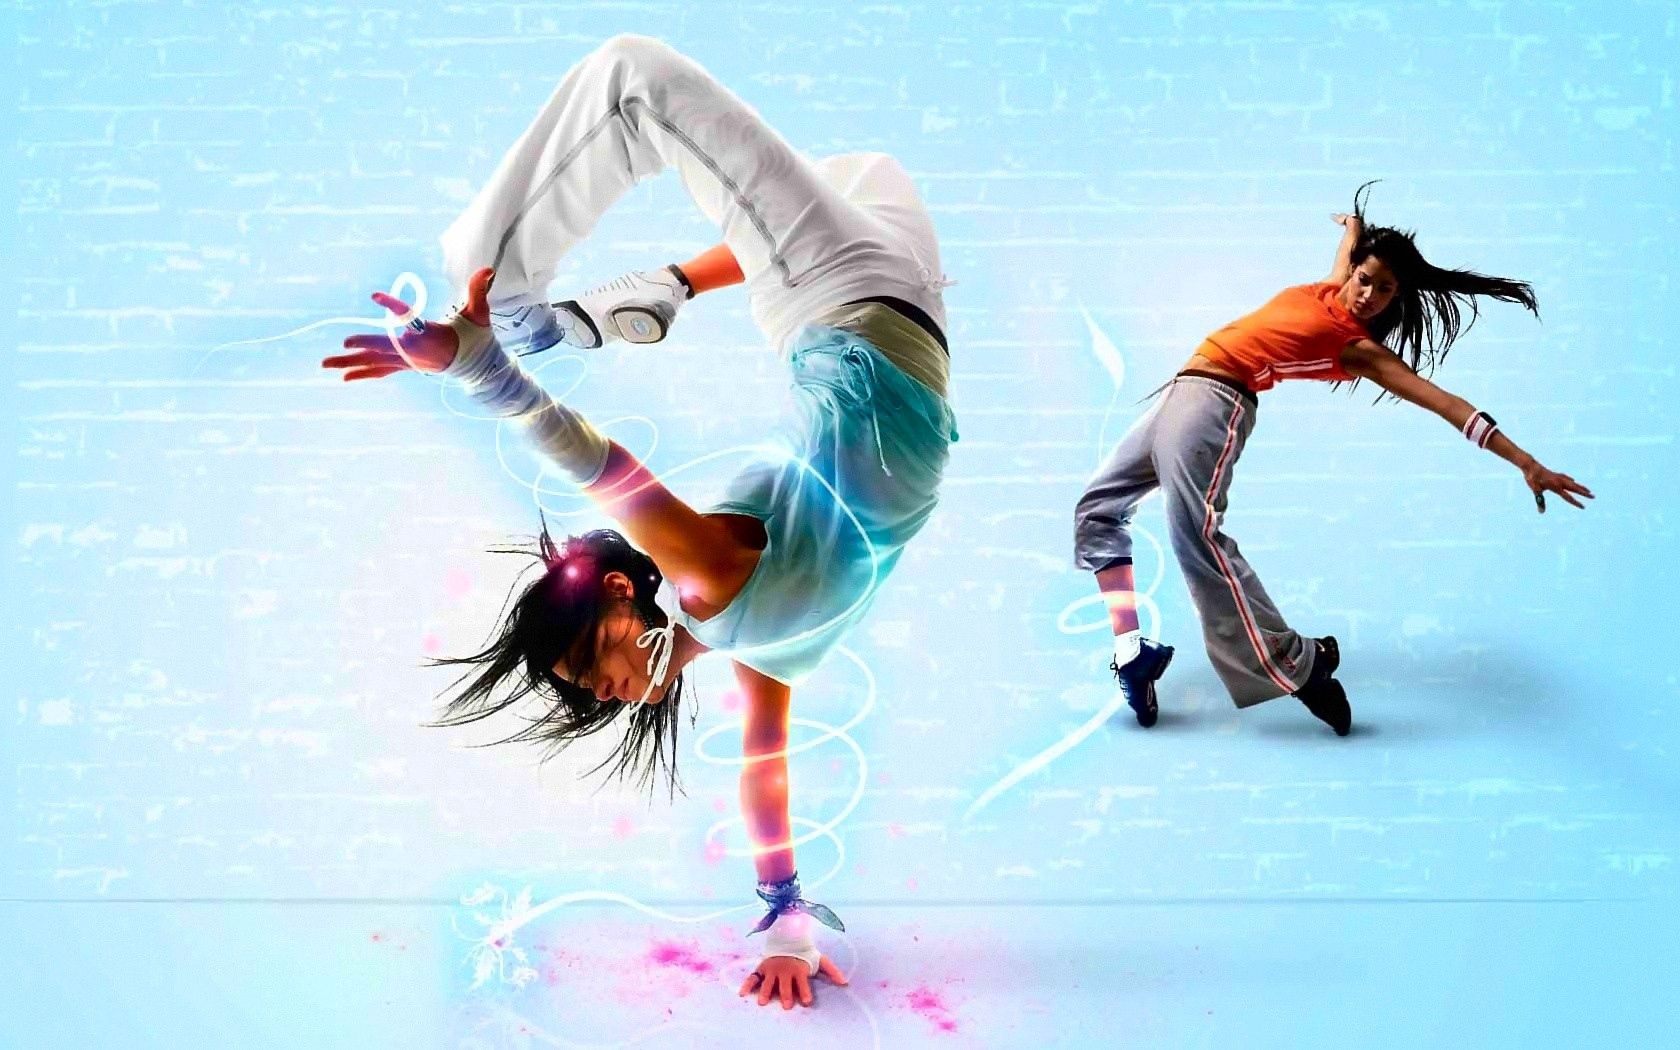 128653 download wallpaper Girls, Dance, Miscellanea, Miscellaneous, Traffic, Movement, Style, Brakedance, Break Dance screensavers and pictures for free